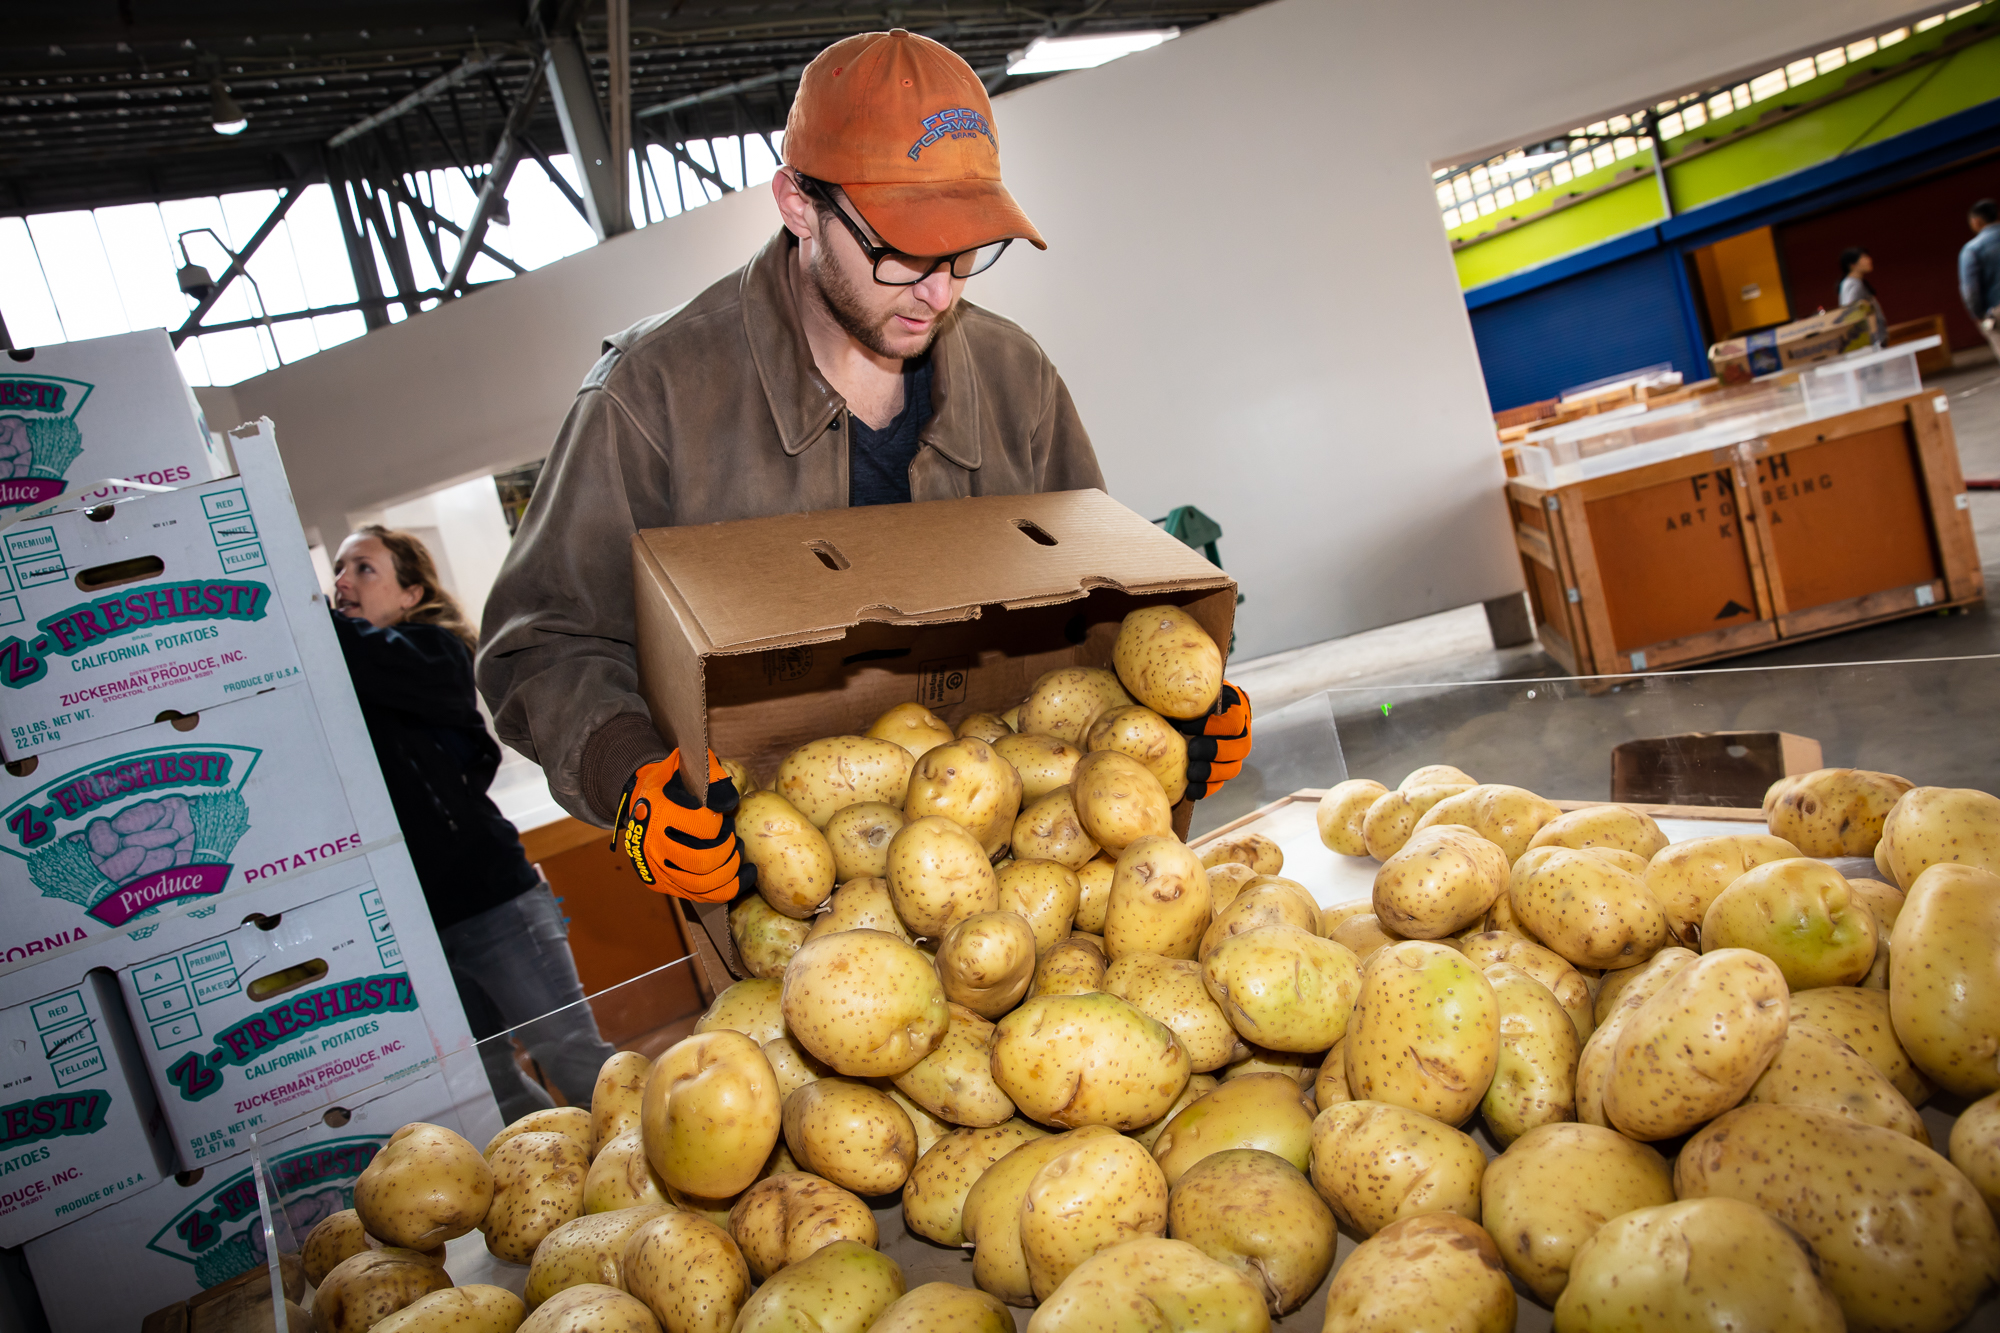 worker inspecting and sorting rescued potatoes